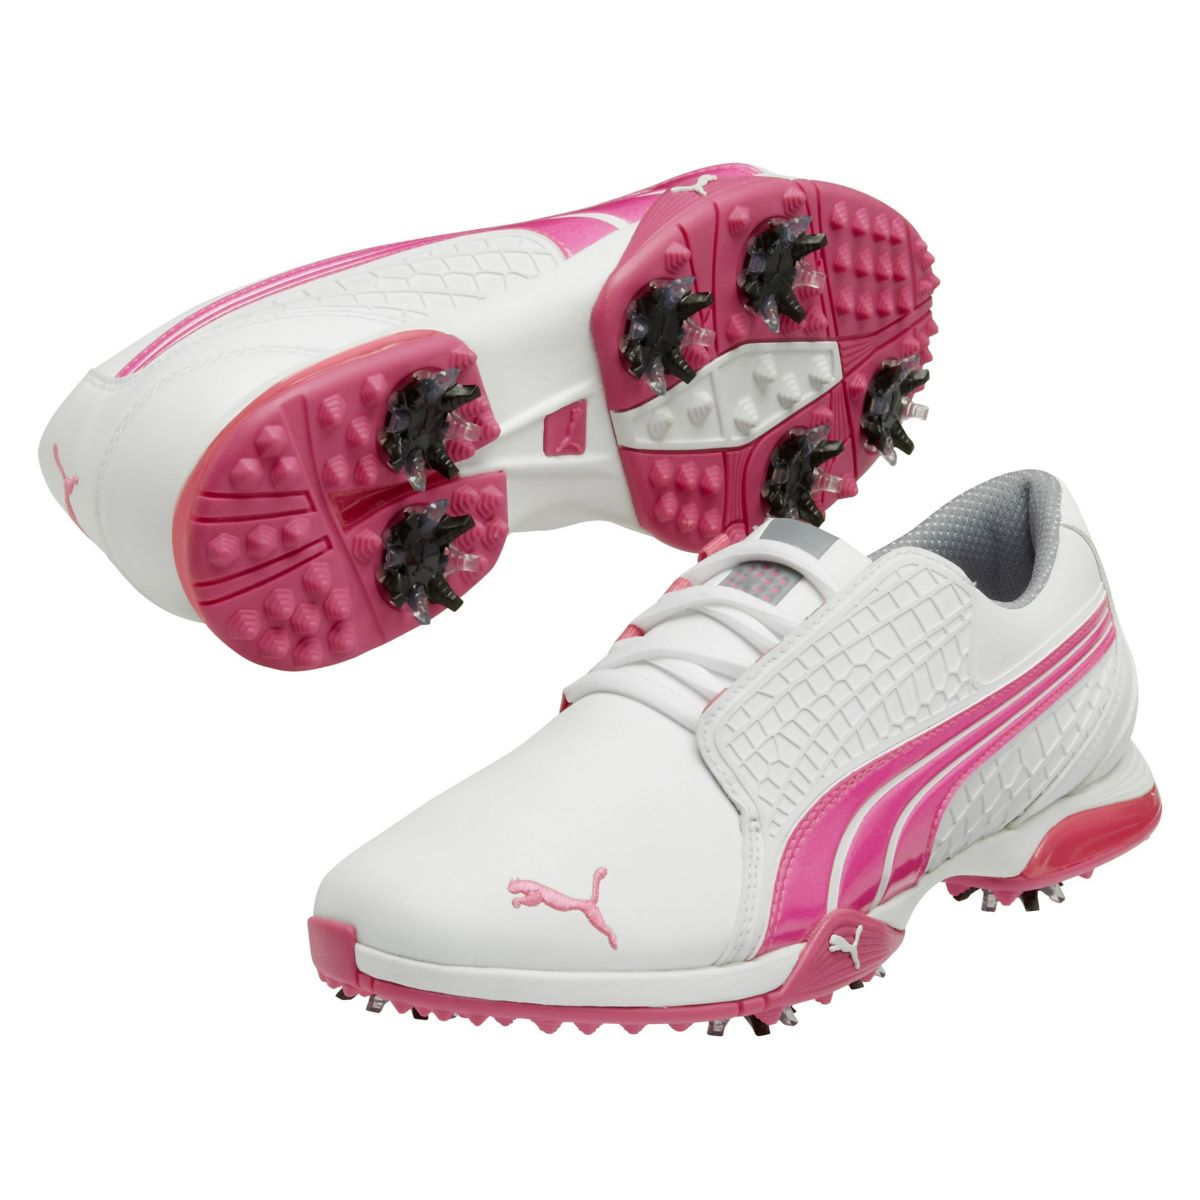 biofusion s golf shoes white fluorescent pink